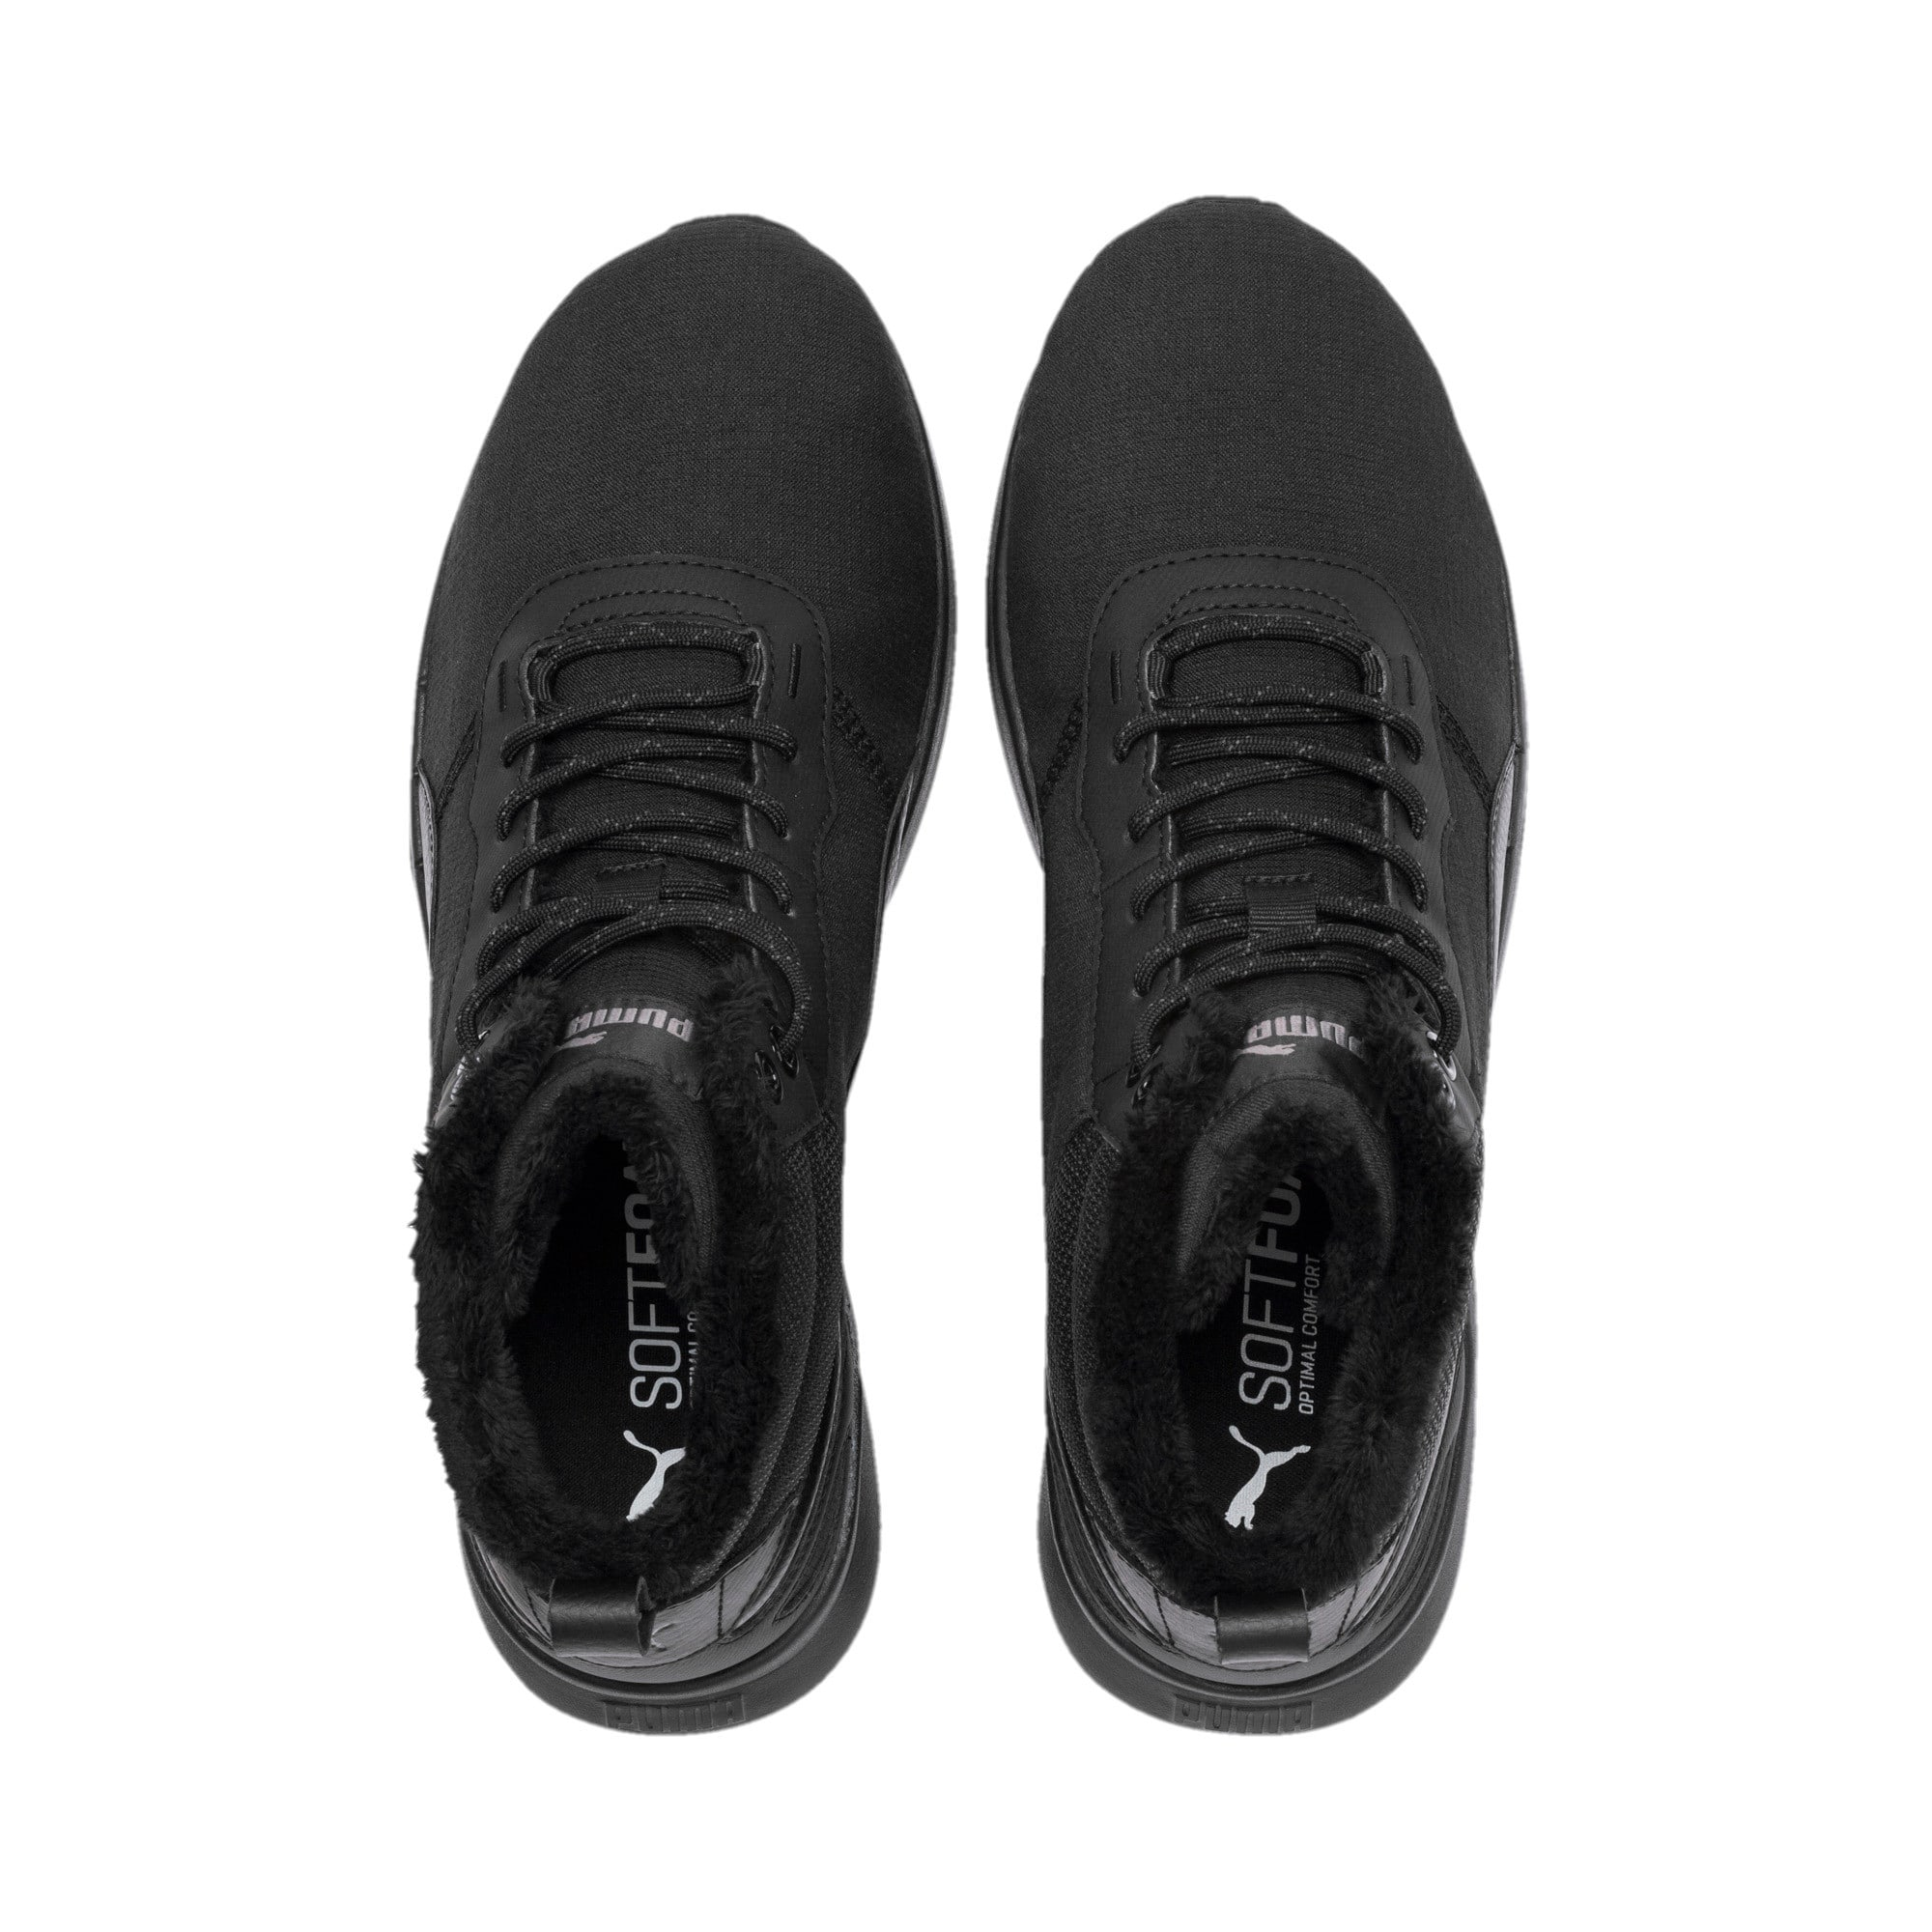 Thumbnail 7 of Activate Mid-Cut Boots, Puma Black-Puma Black, medium